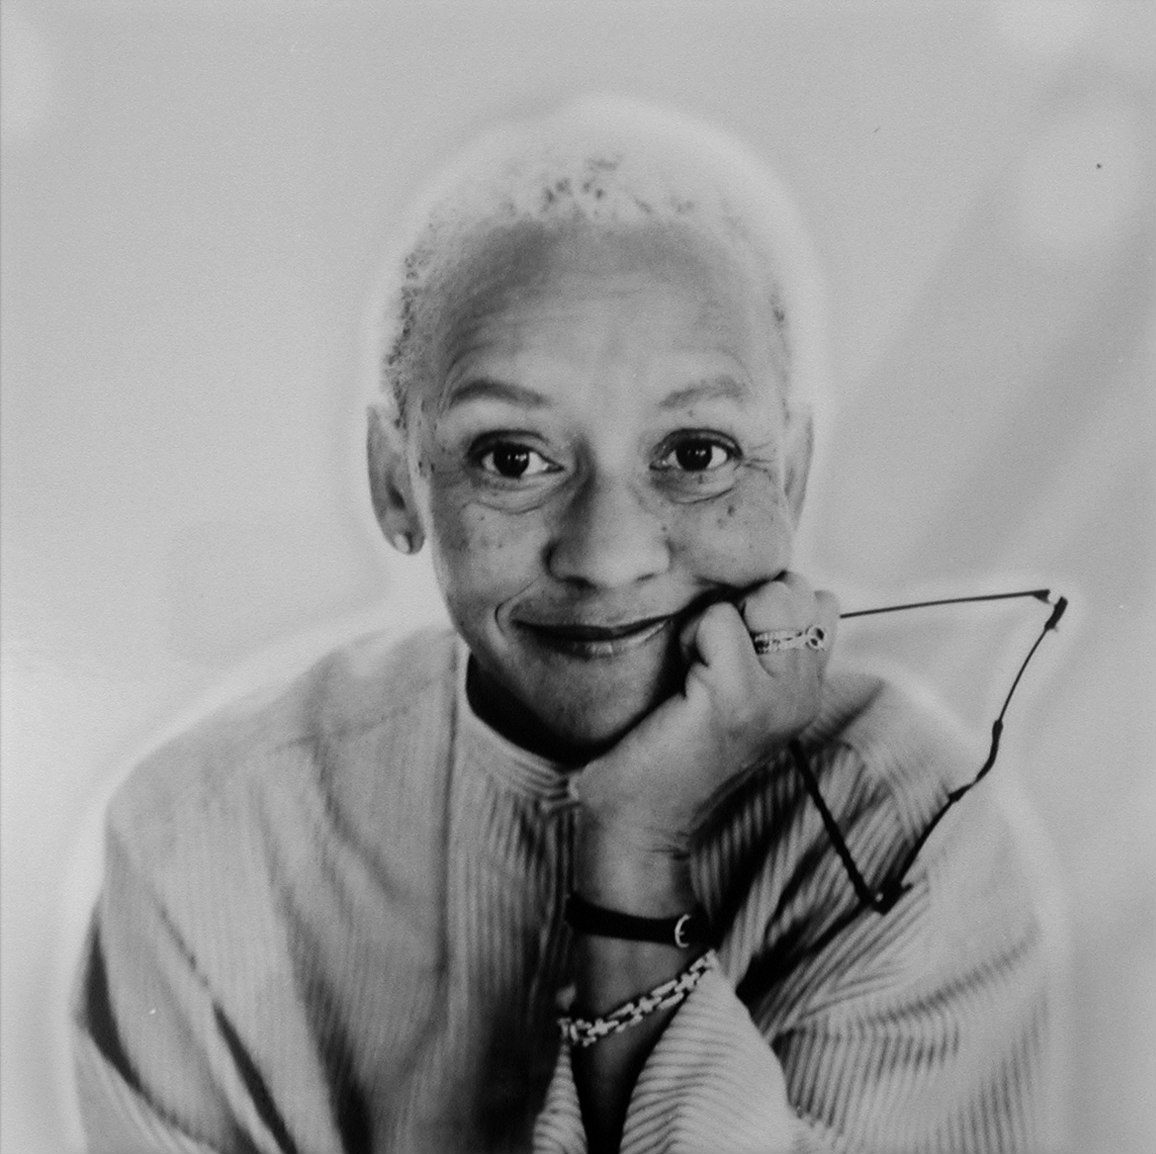 A black and white portrait of Nikki Giovanni, a Black woman with short, blond hair, holds her hand up to her chin